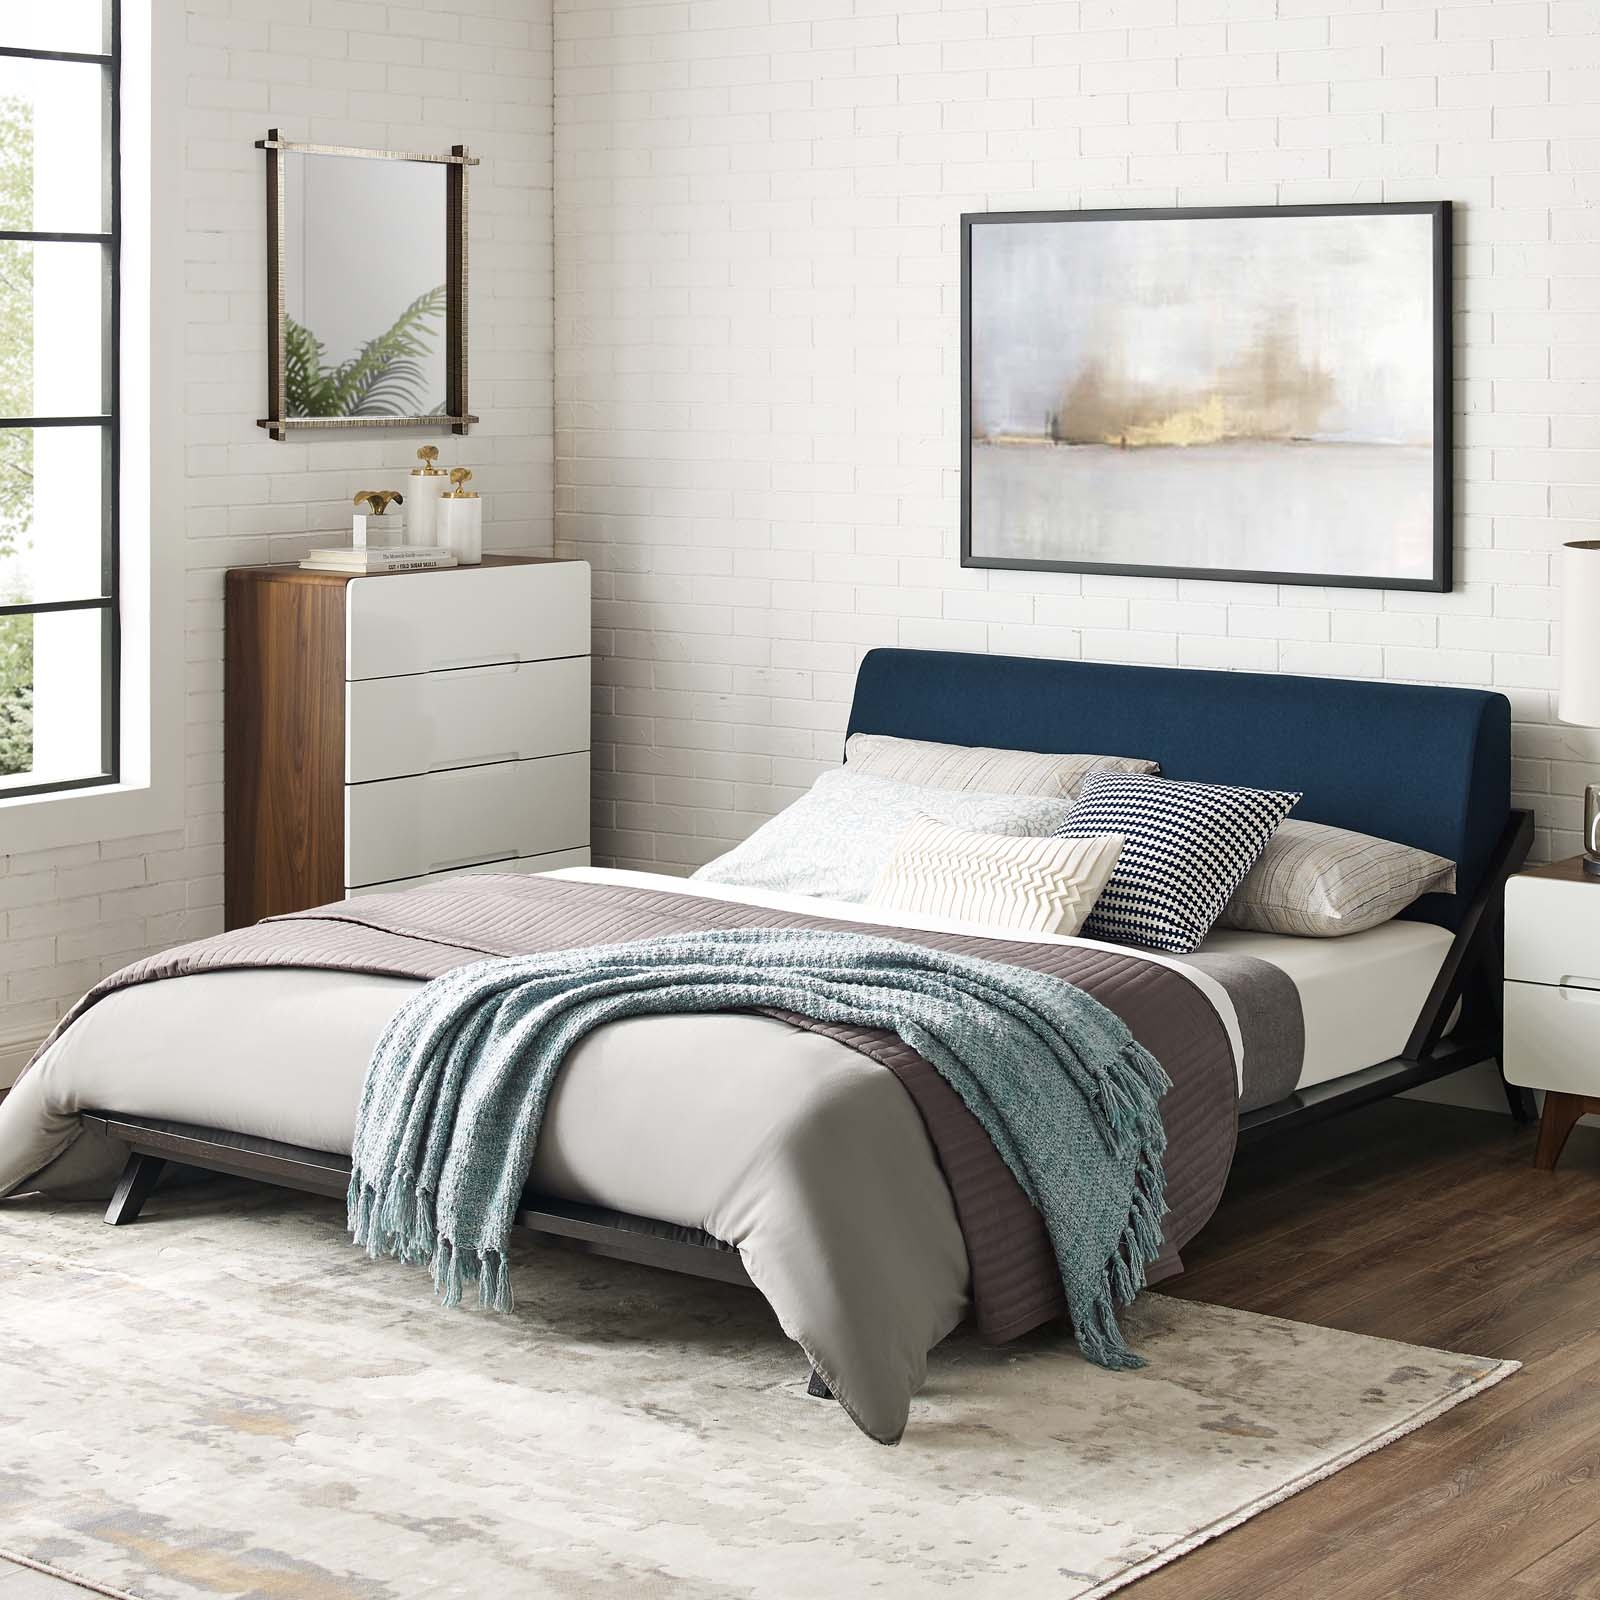 Luella Queen Upholstered Fabric Platform Bed in Cappuccino Blue